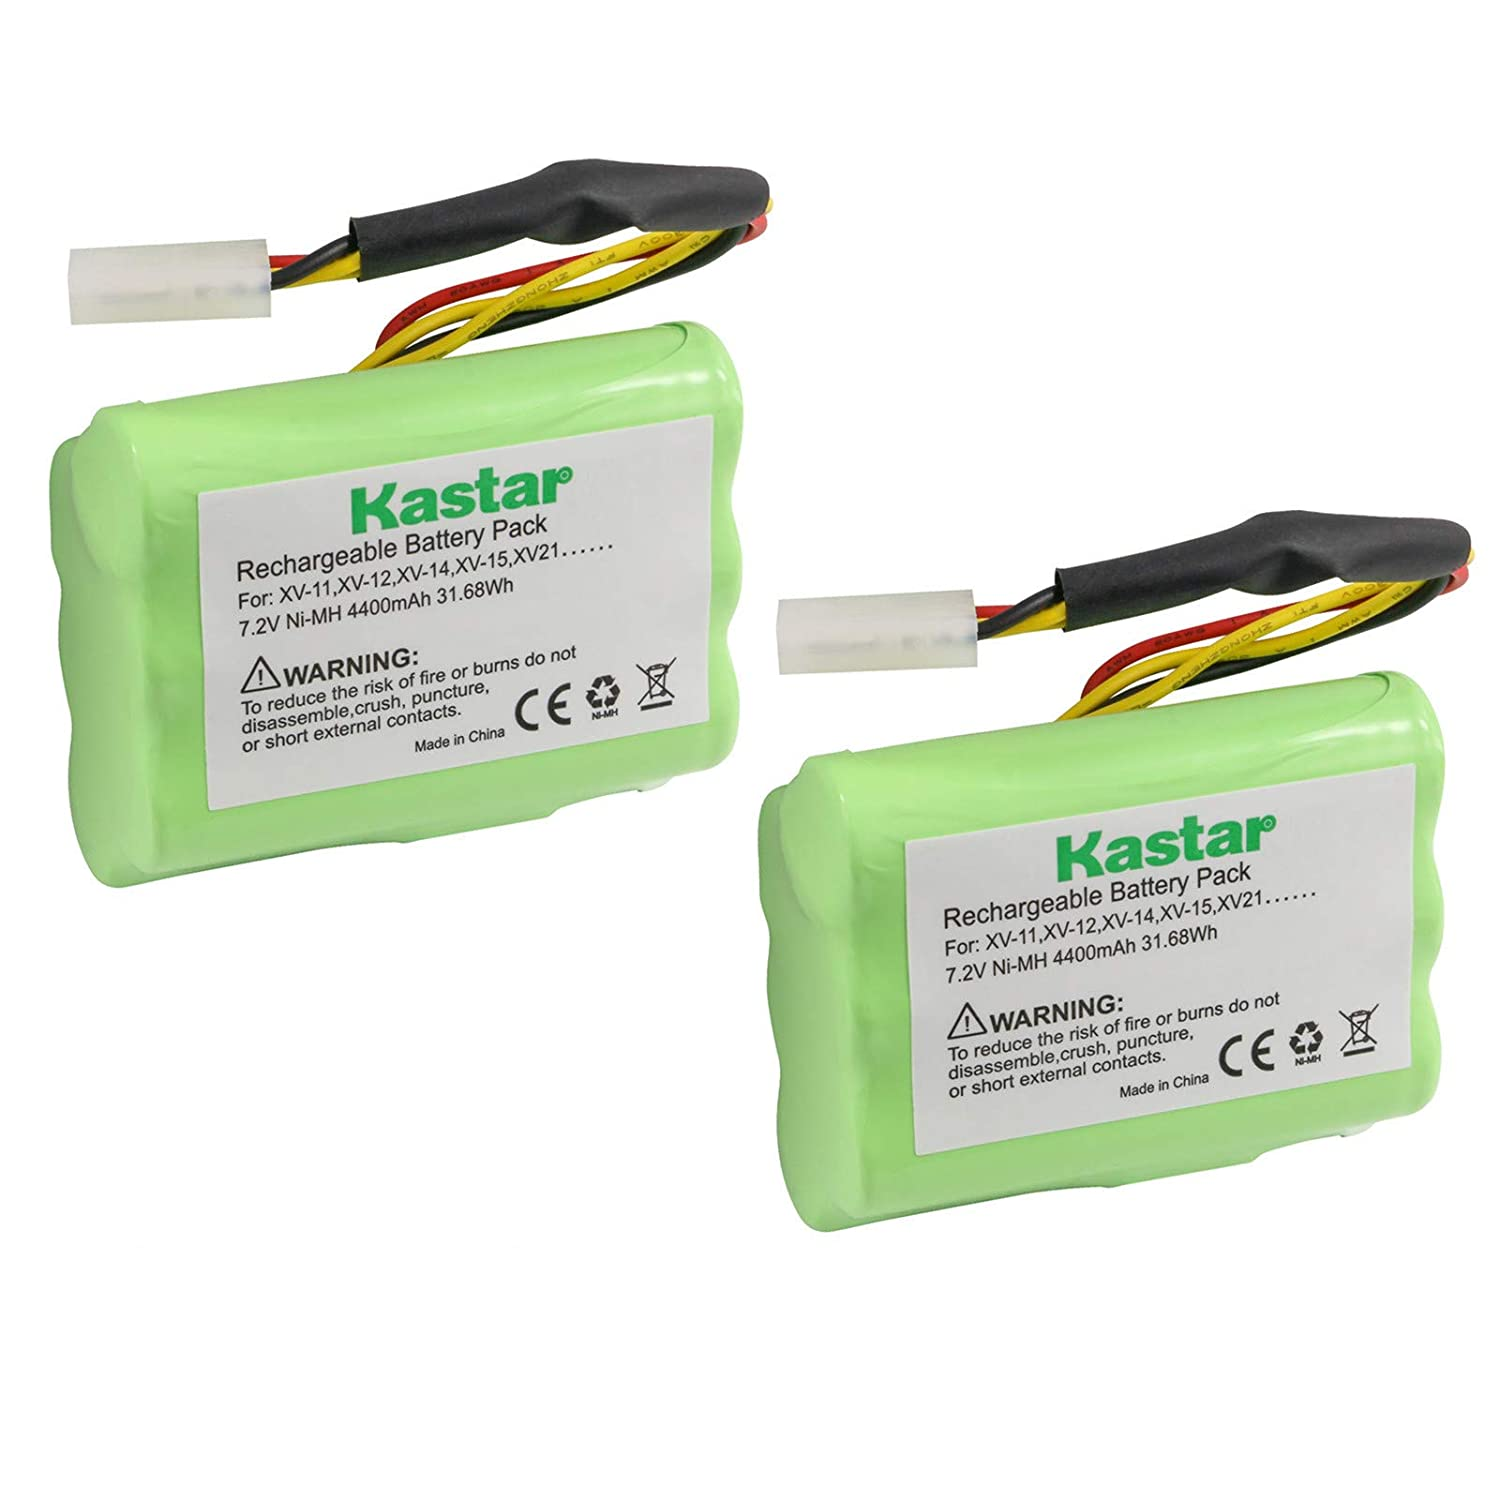 Kastar XV11 Battery (2 Pack), Ni-MH 7.2V 4400mAh, Replacement for Neato XV-11 XV-12 XV-14 XV-15 XV-21 XV-25, XV Essential, XV Signature Pro Robotic Vacuum Cleaners Neato Battery 945-0005 205-0001